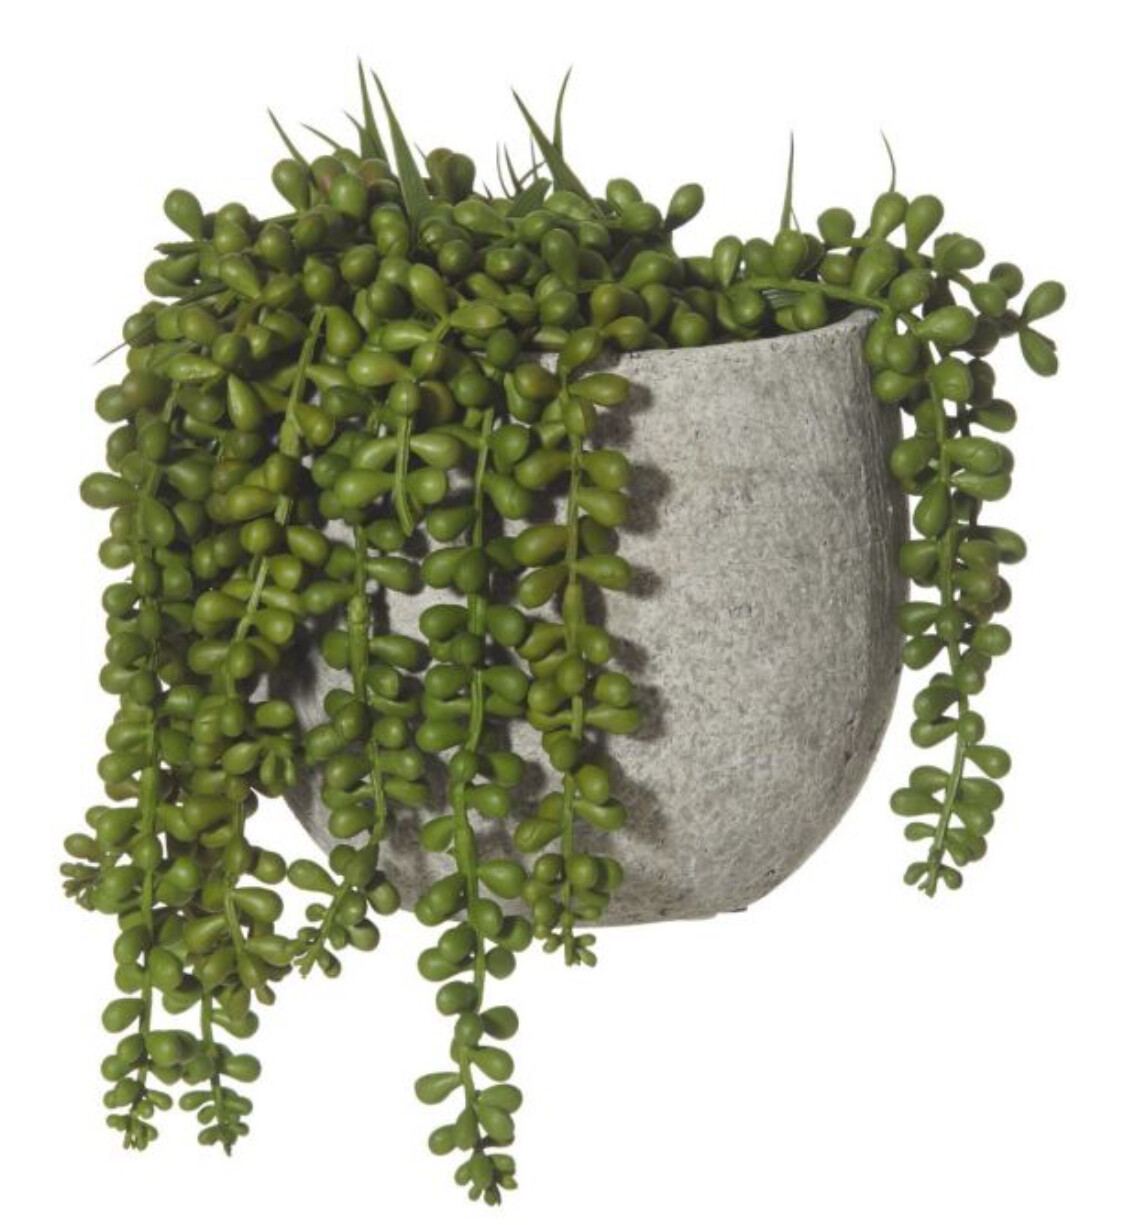 HANGING PEARLS IN CONCRETE POT